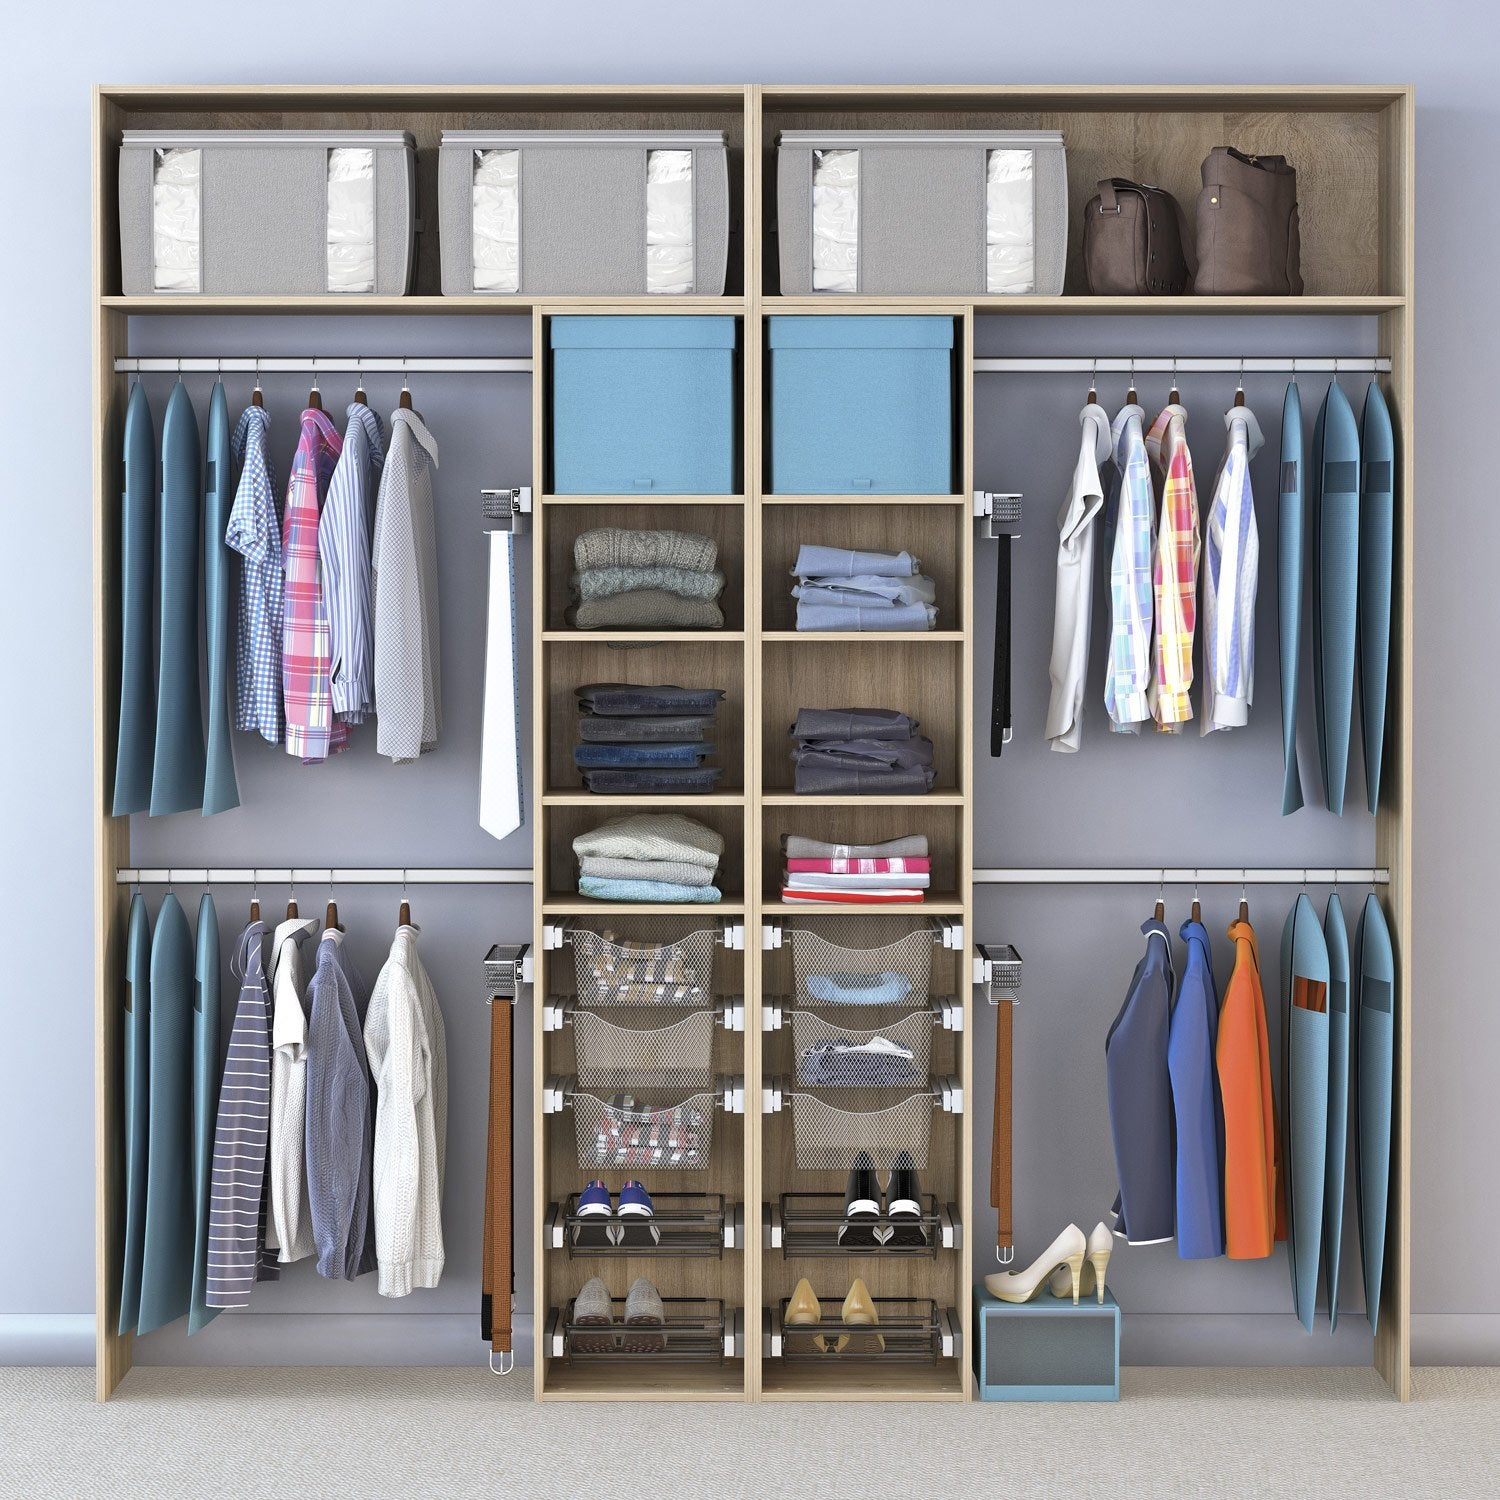 Dressing spaceo home effet ch ne leroy merlin - Leroy merlin dressing ...